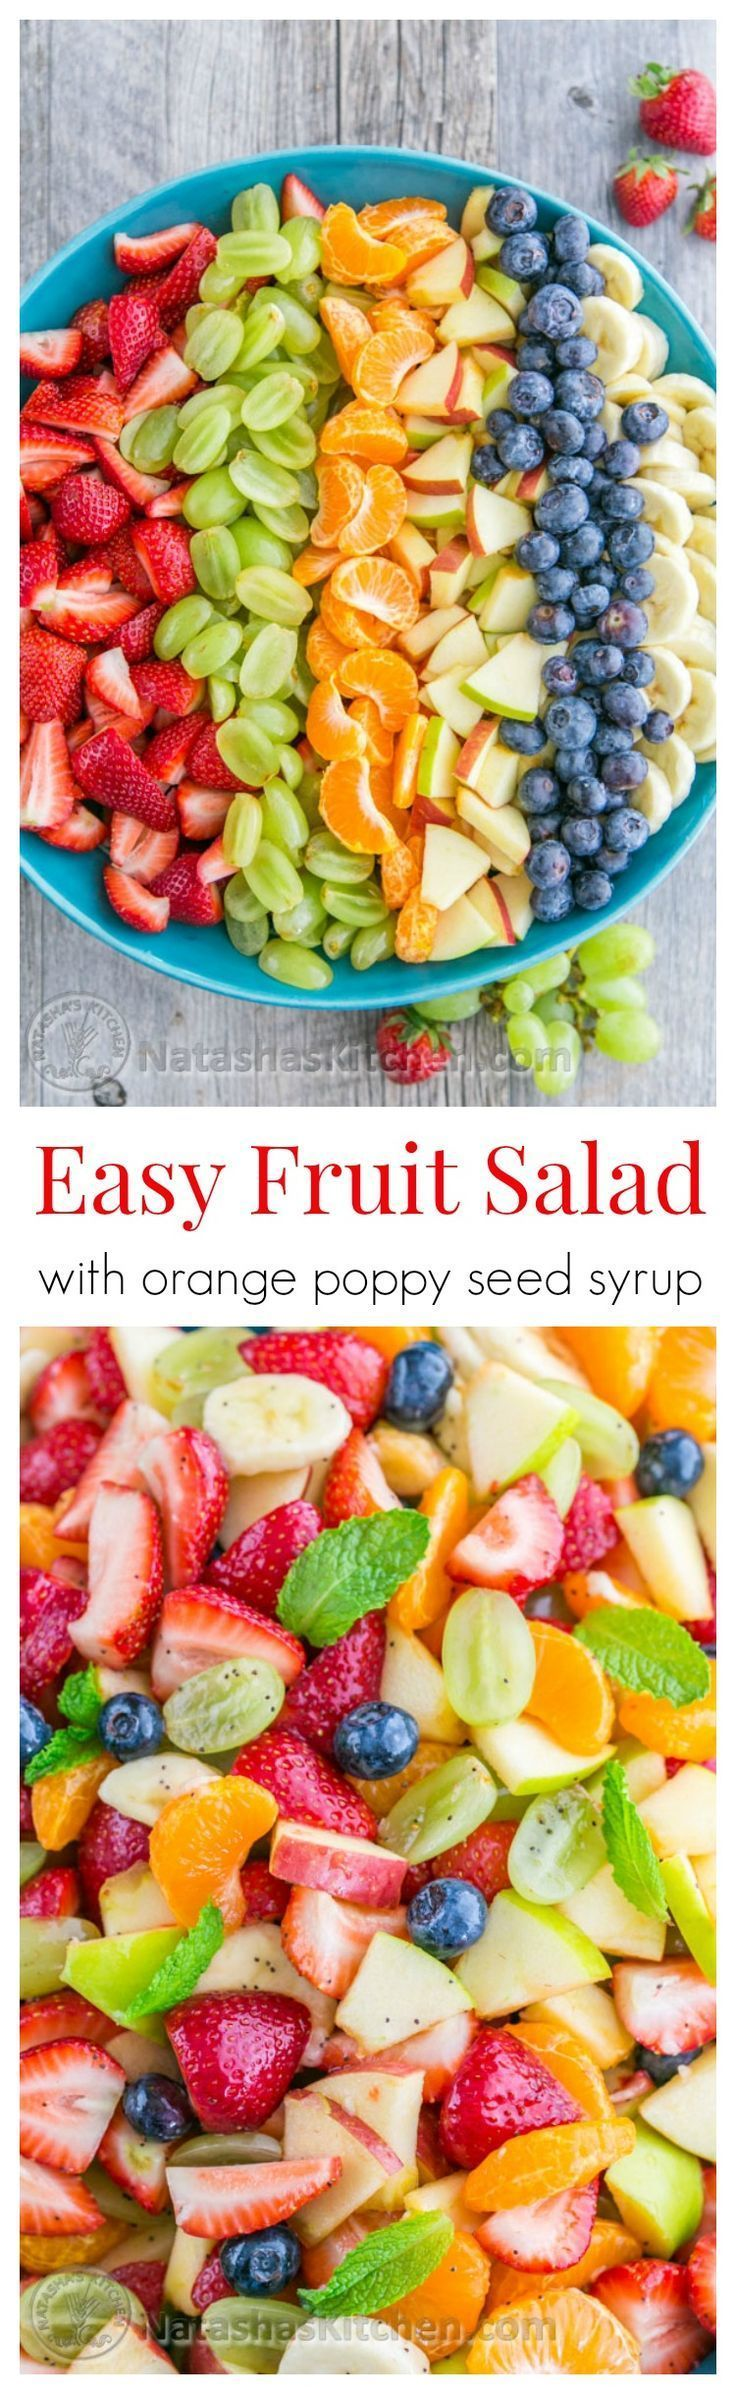 This Fruit Salad with Orange Poppy Seed Syrup is so easy & perfect for parties! @natashaskitchen